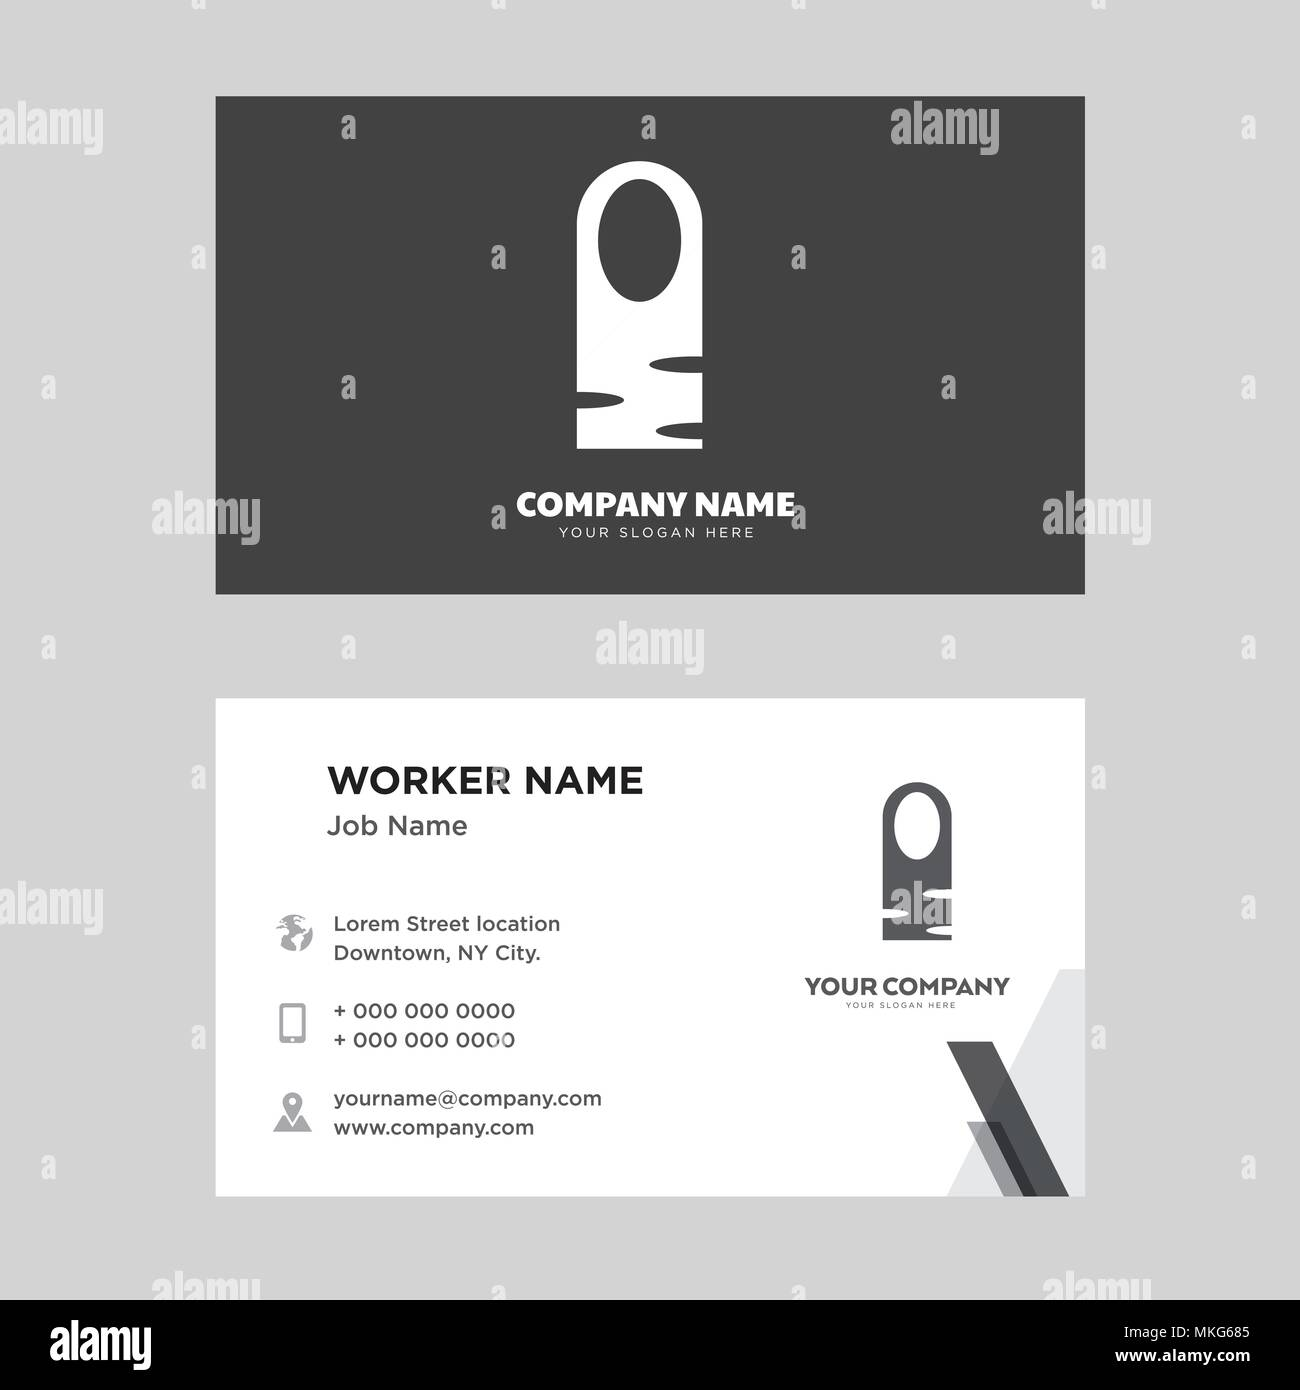 Long Nail Business Card Design Template Visiting For Your Company